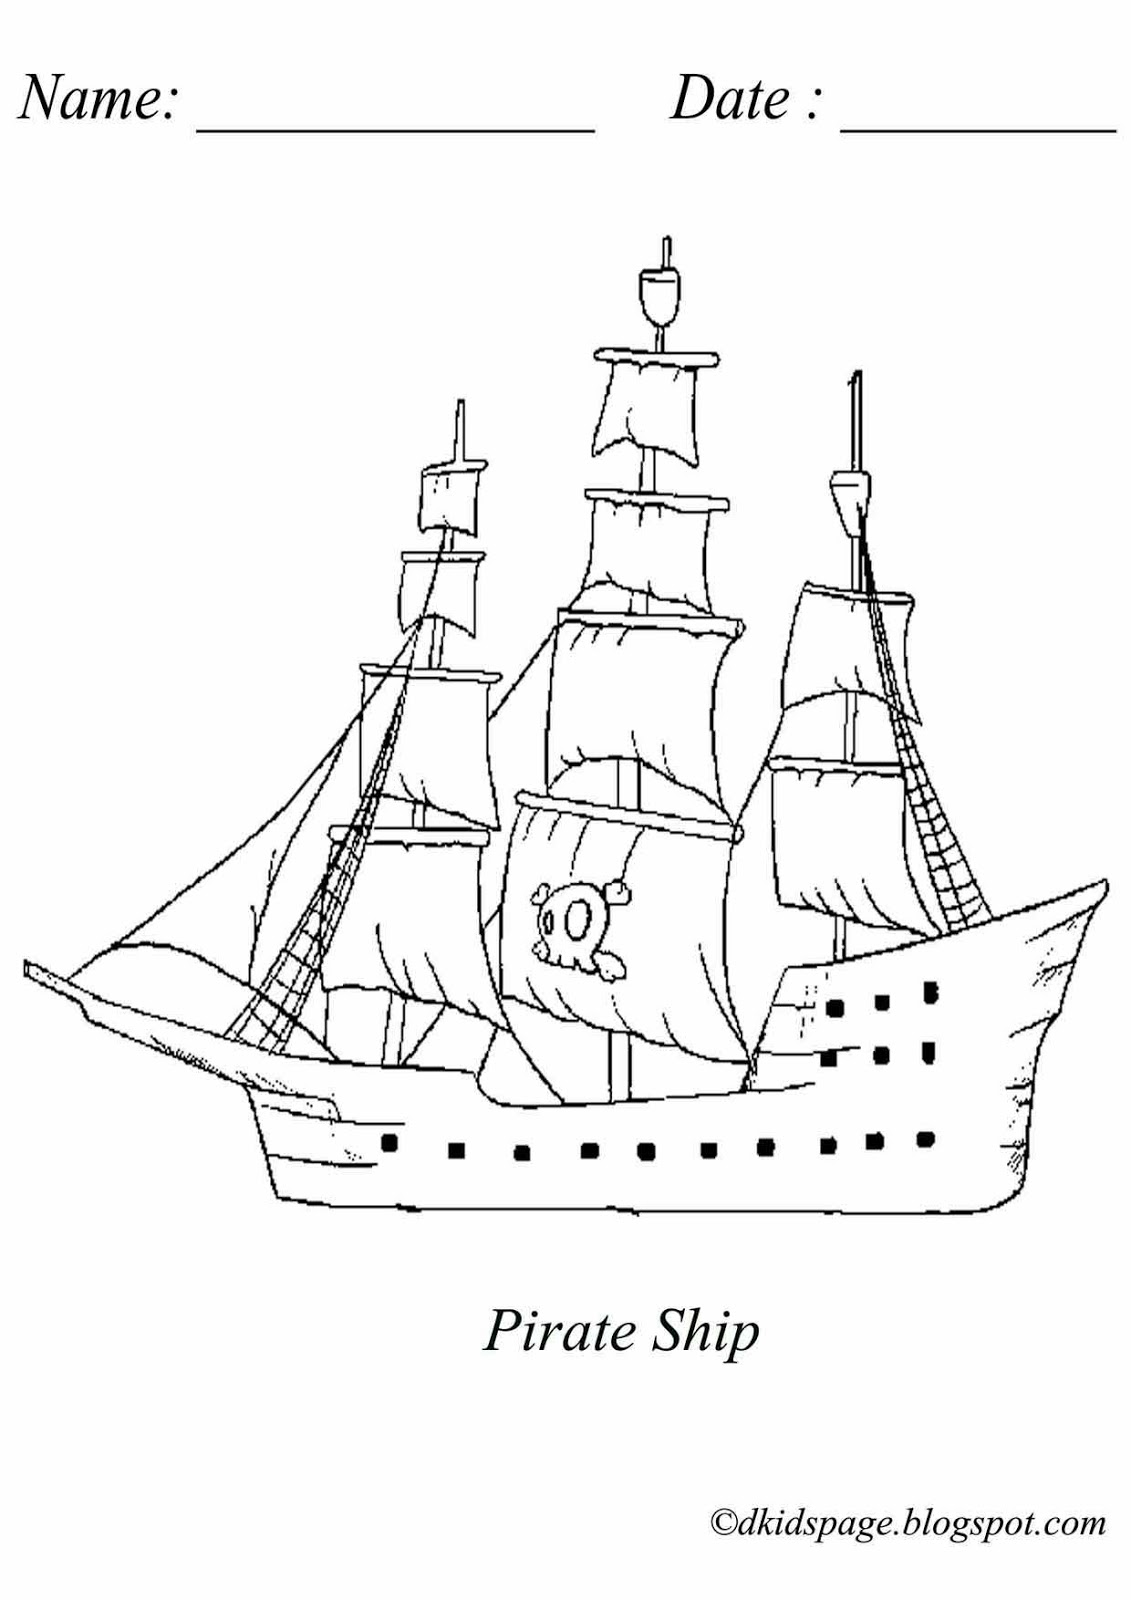 pirate ship coloring pages for kids sketch coloring page